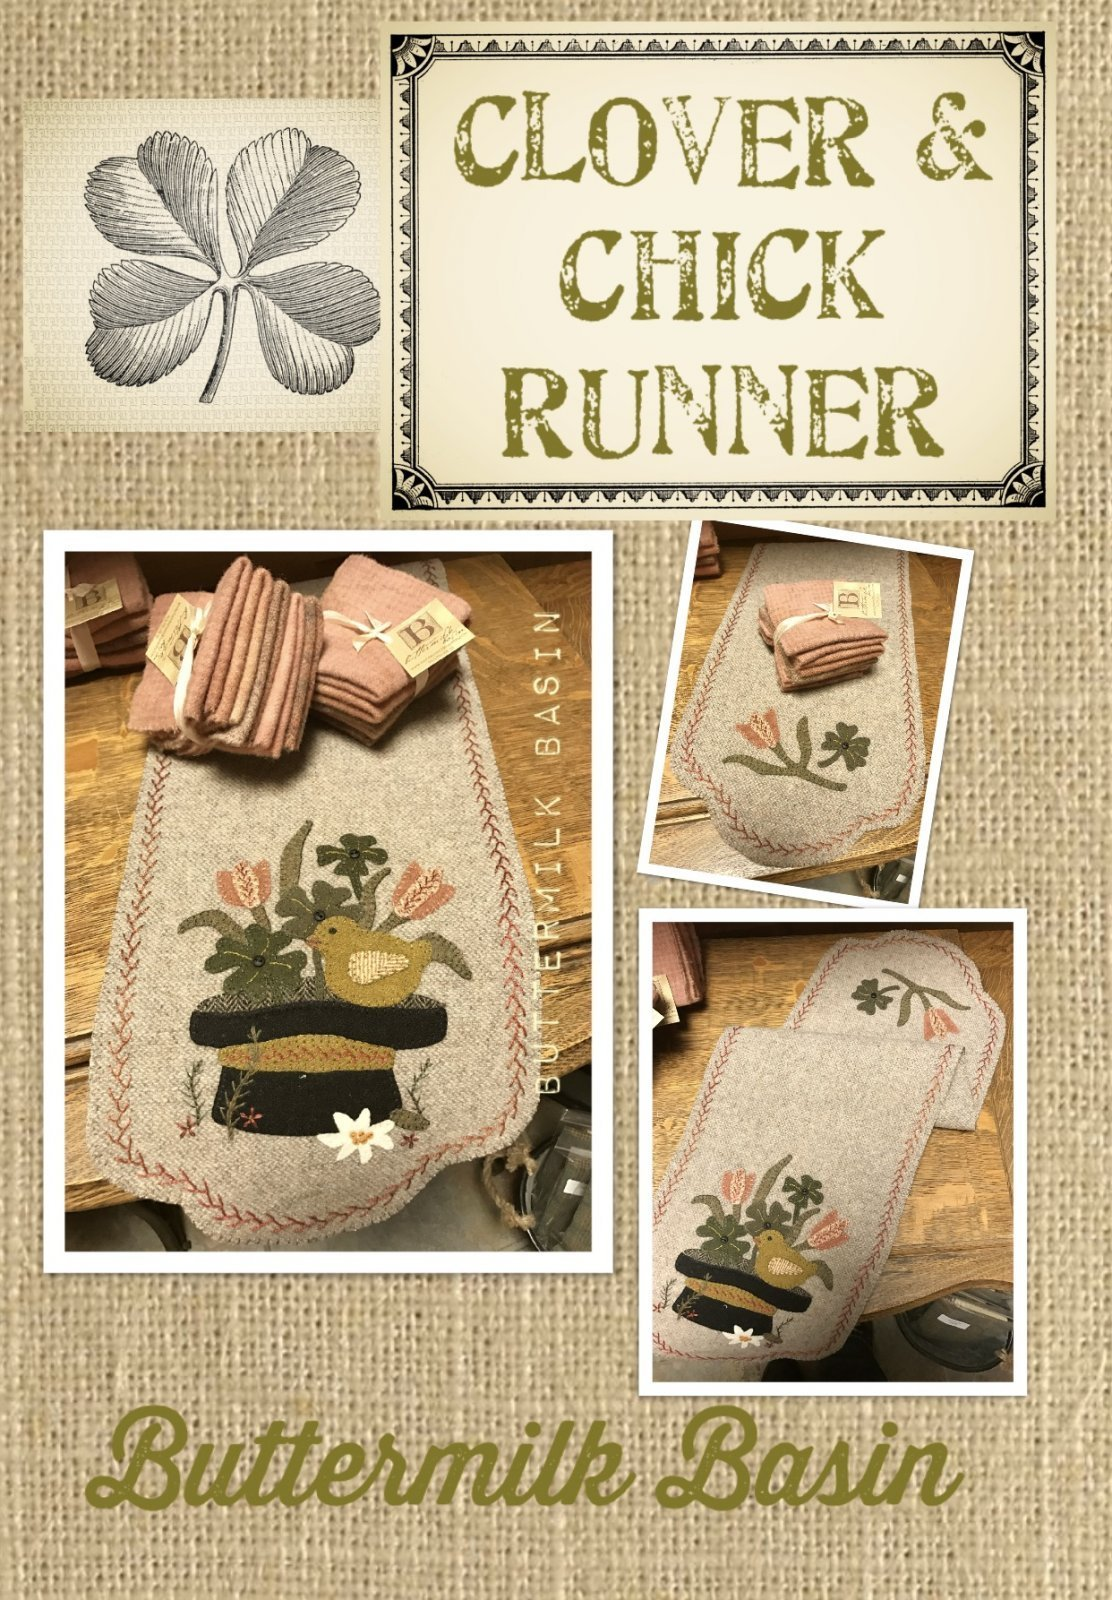 Clover & Chick Runner Wool Applique Kit